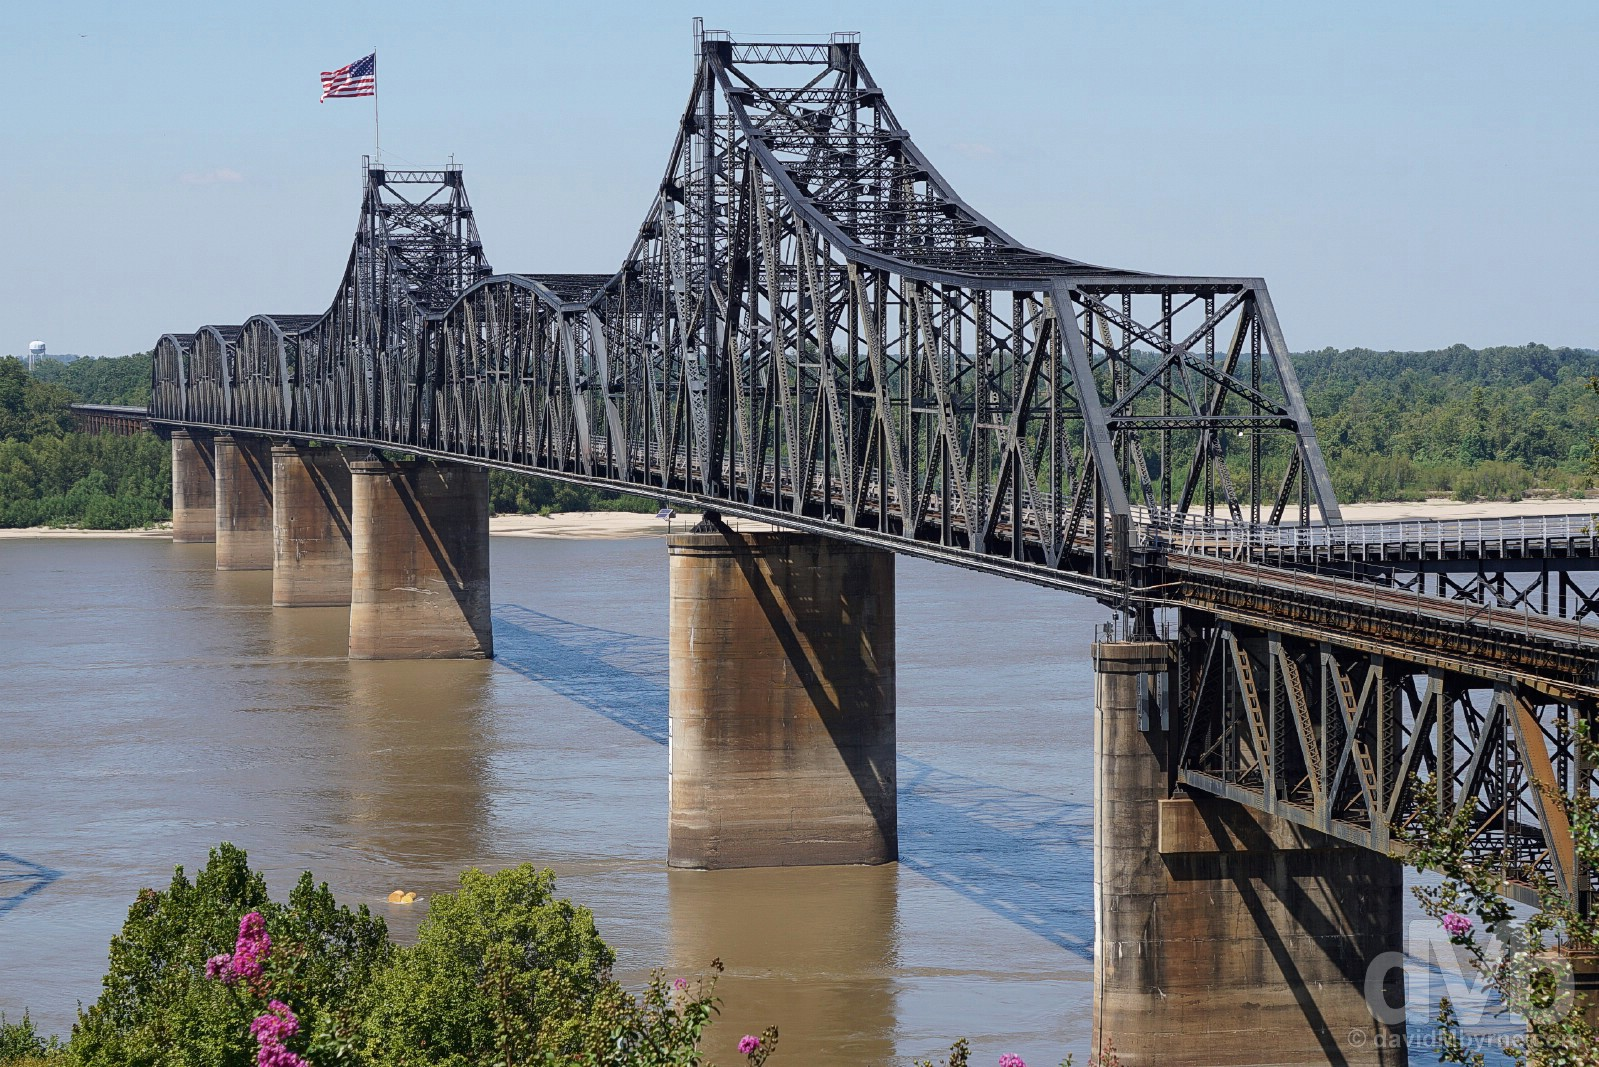 The Old Vicksburg Bridge, also known as Mississippi River Bridge, spanning the Mississippi River in between Delta, Louisiana and Vicksburg, Mississippi, USA. September 20, 2016.